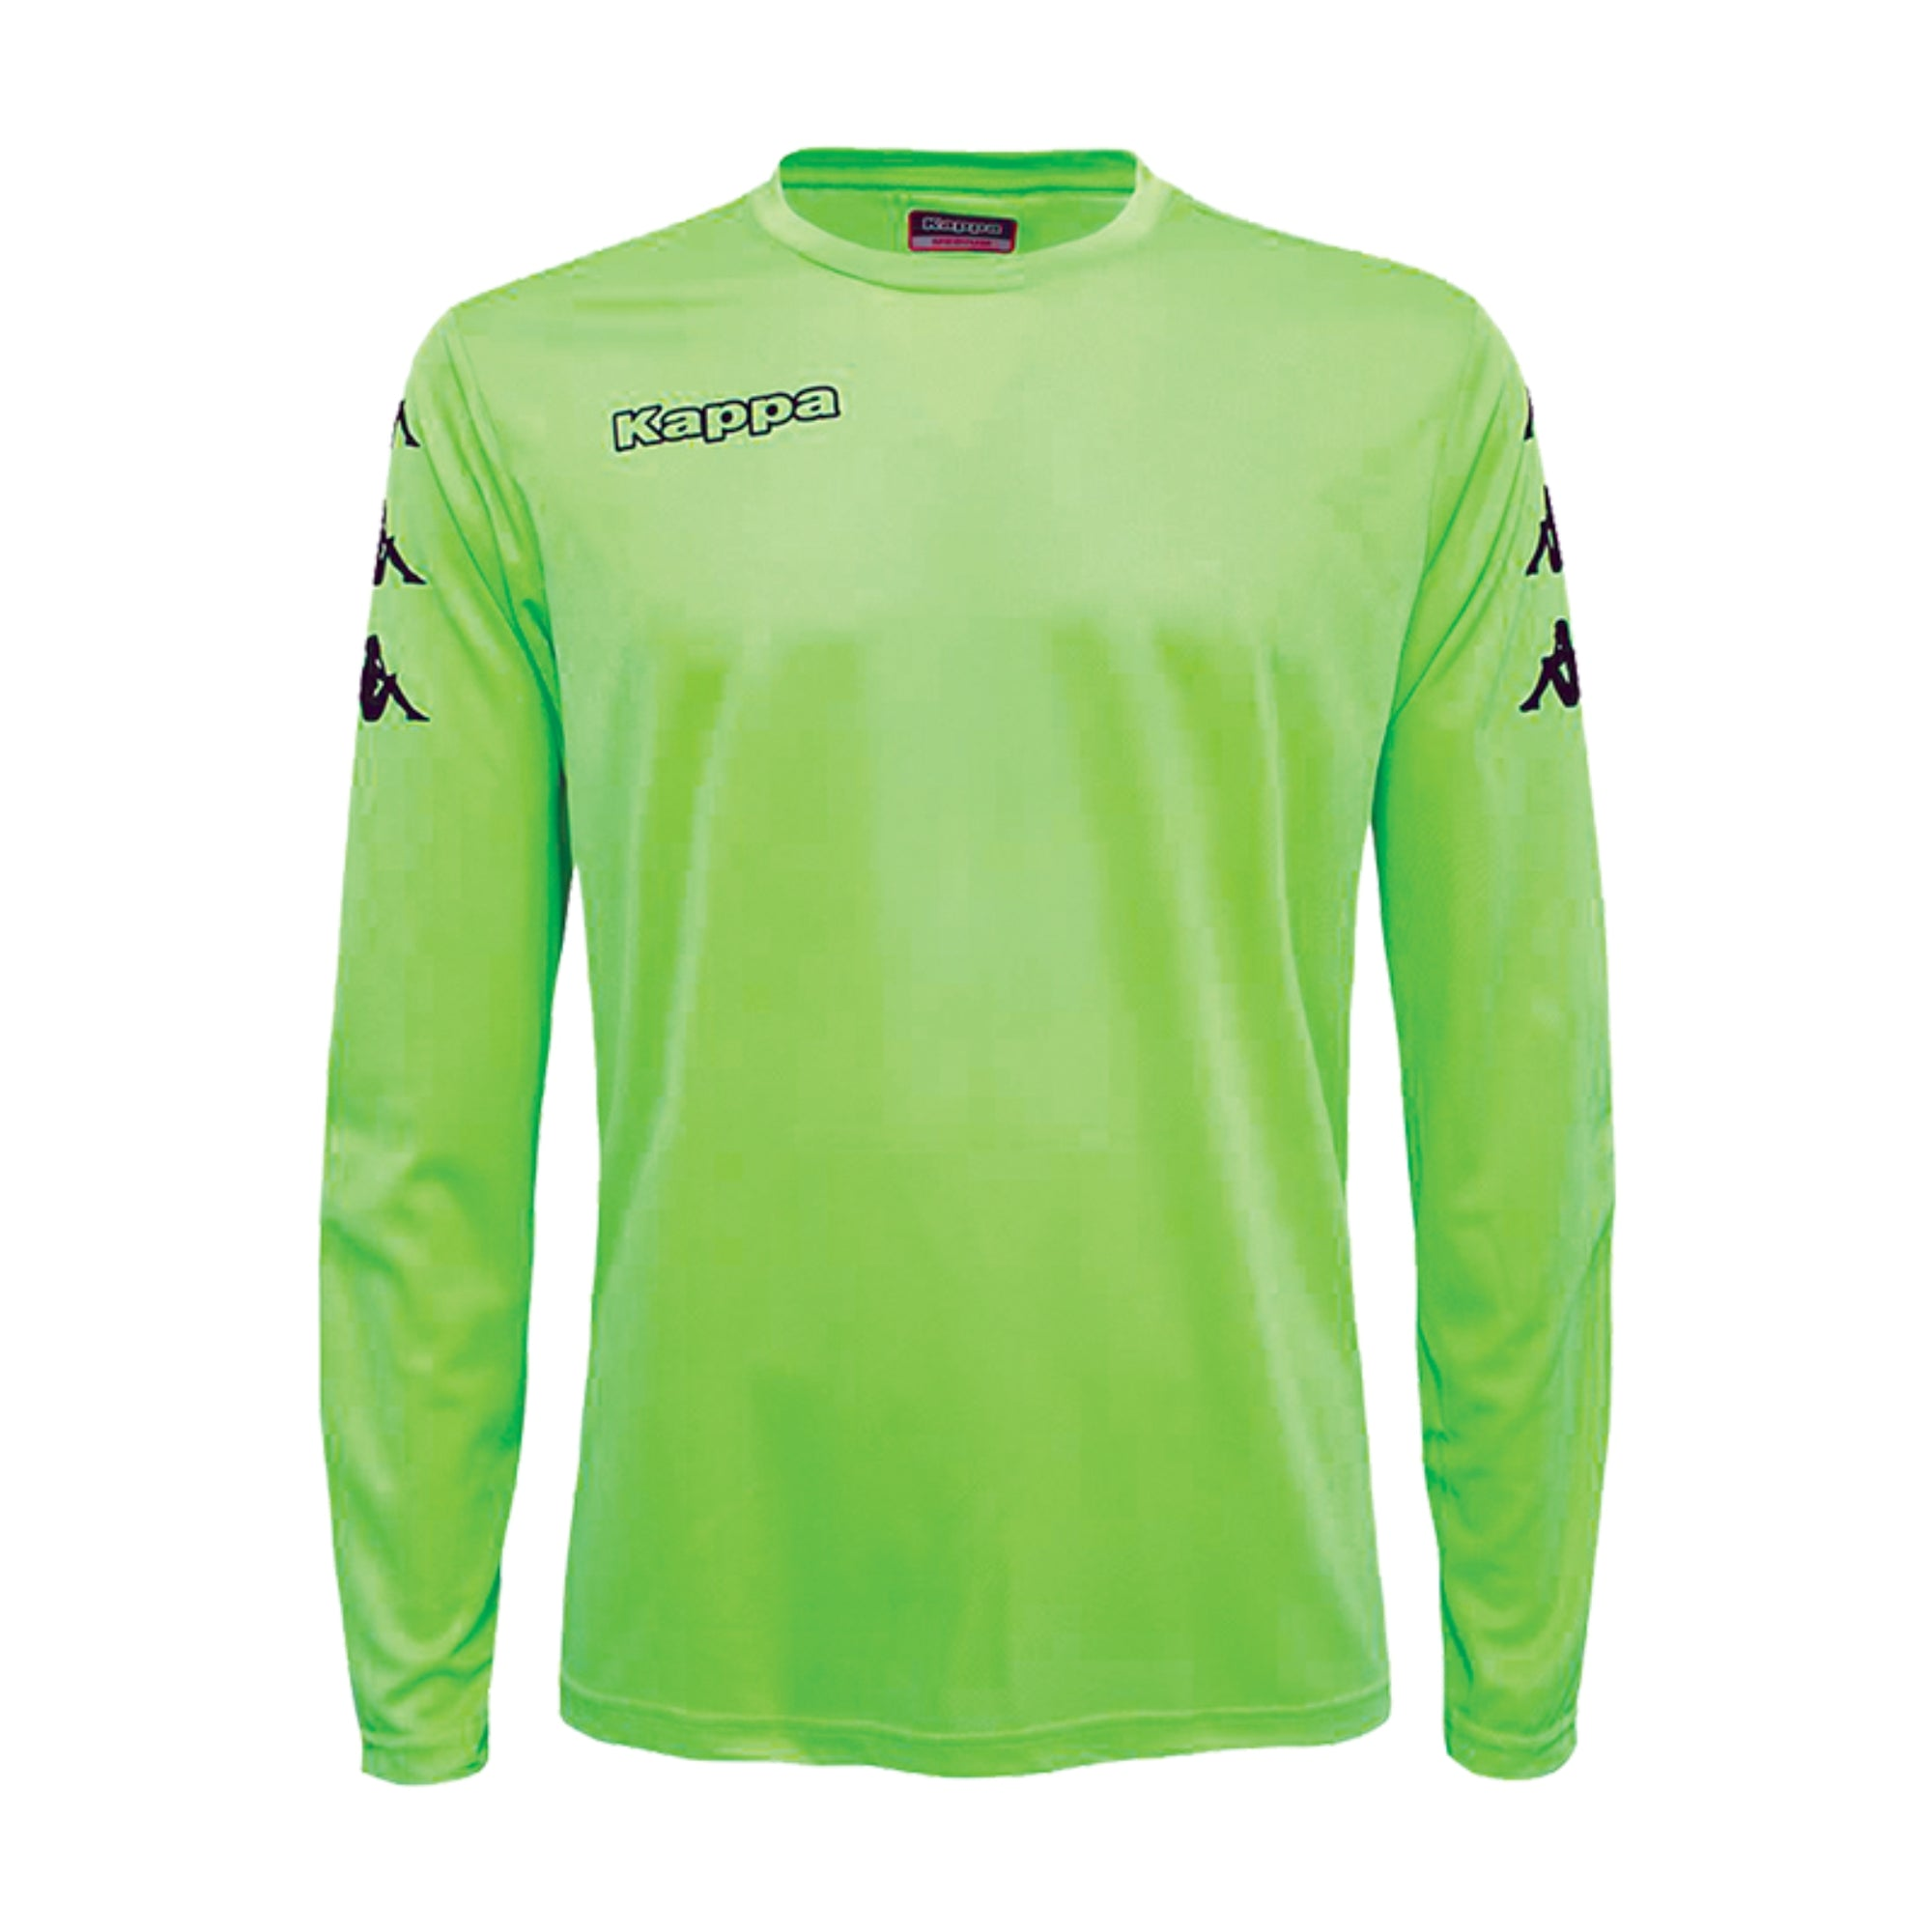 Kappa goalkeeper shirt in green fluo with black printed Omini banda on the sleeves